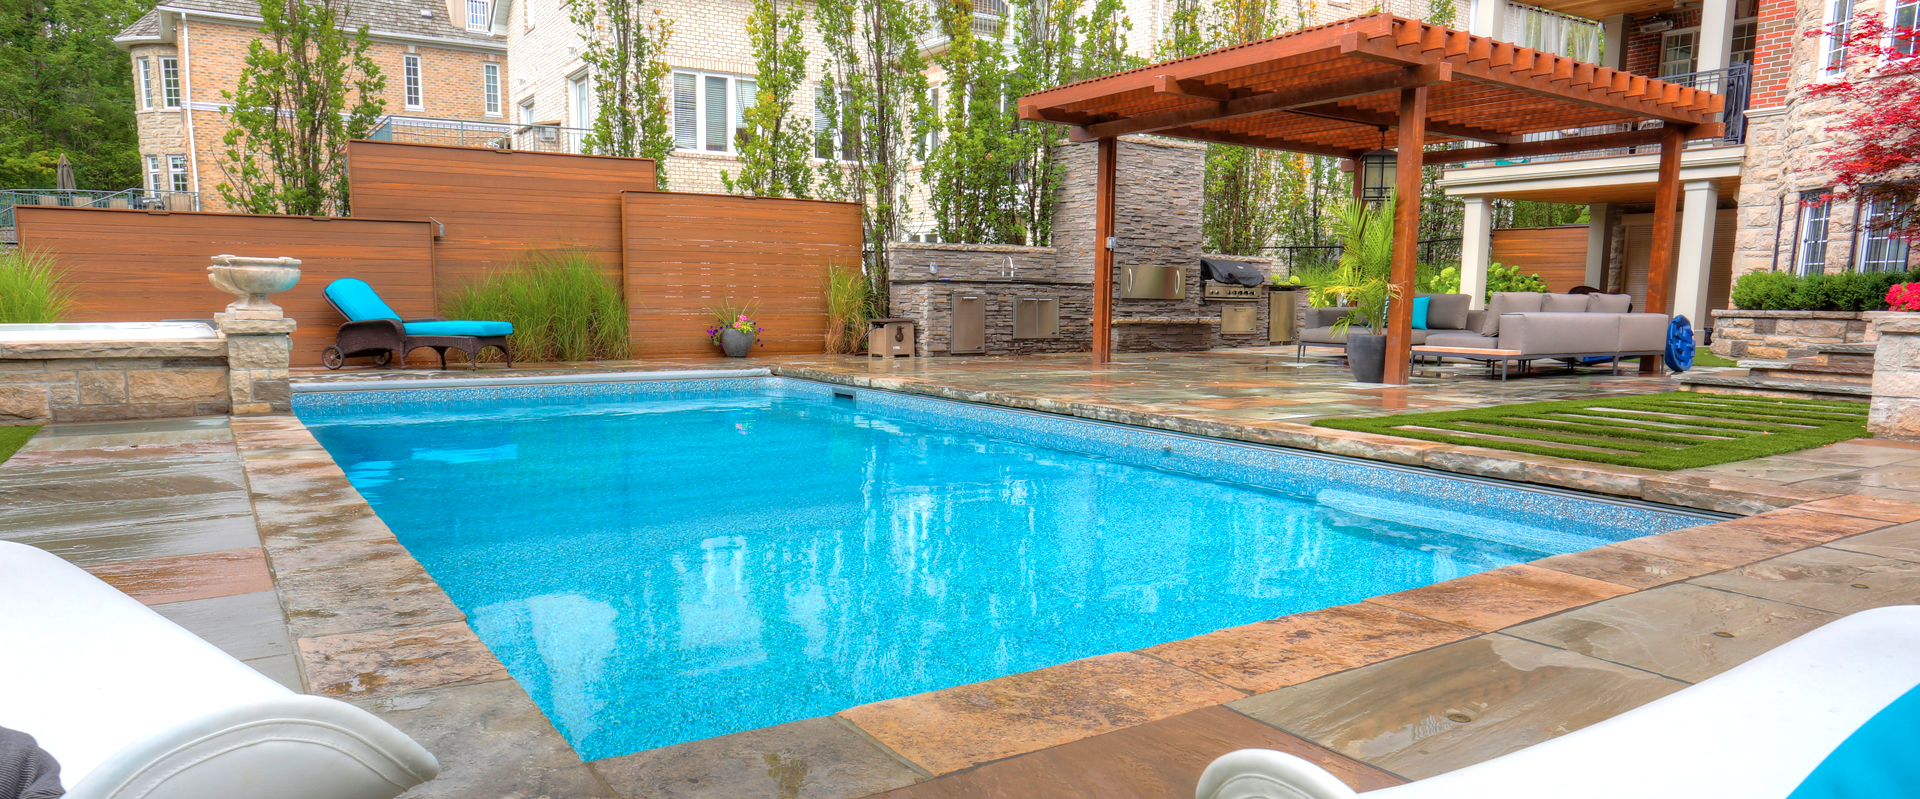 Picking The Best Pool For Your Backyard Advice Pioneer Family Pools